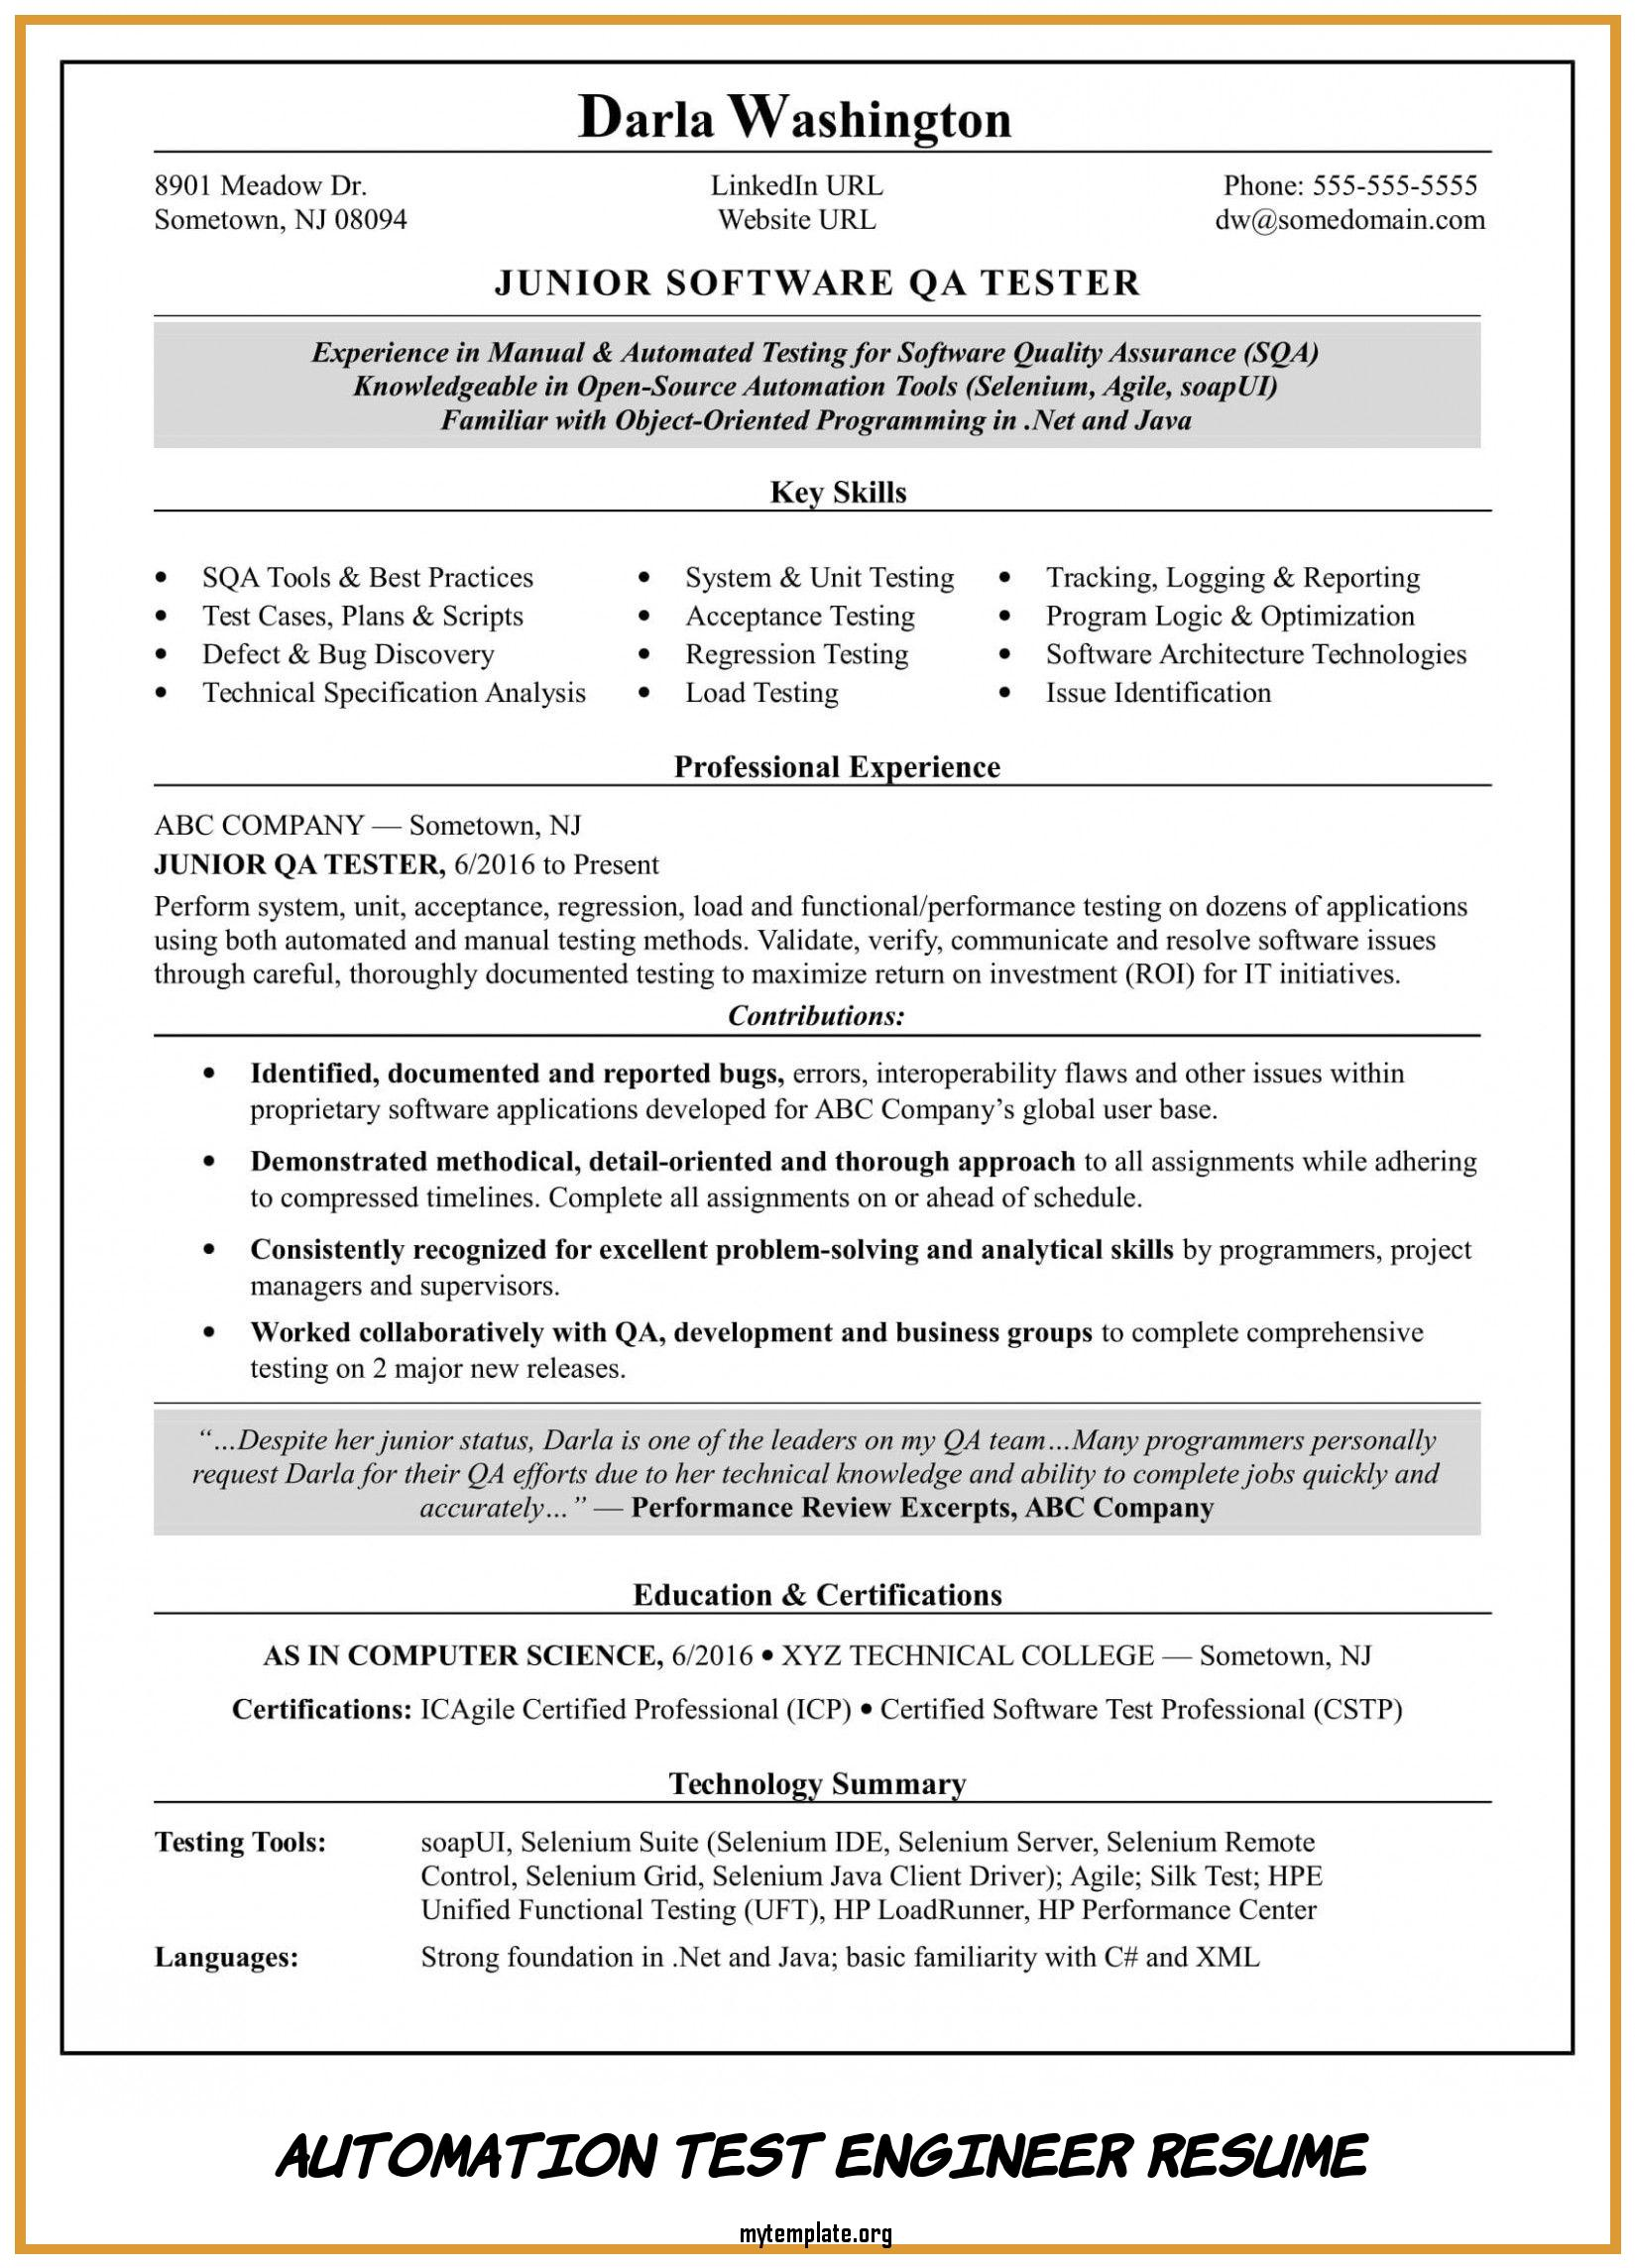 automation test engineer resume free templates sample of take look at pin samples fast Resume Automation Test Engineer Resume Sample